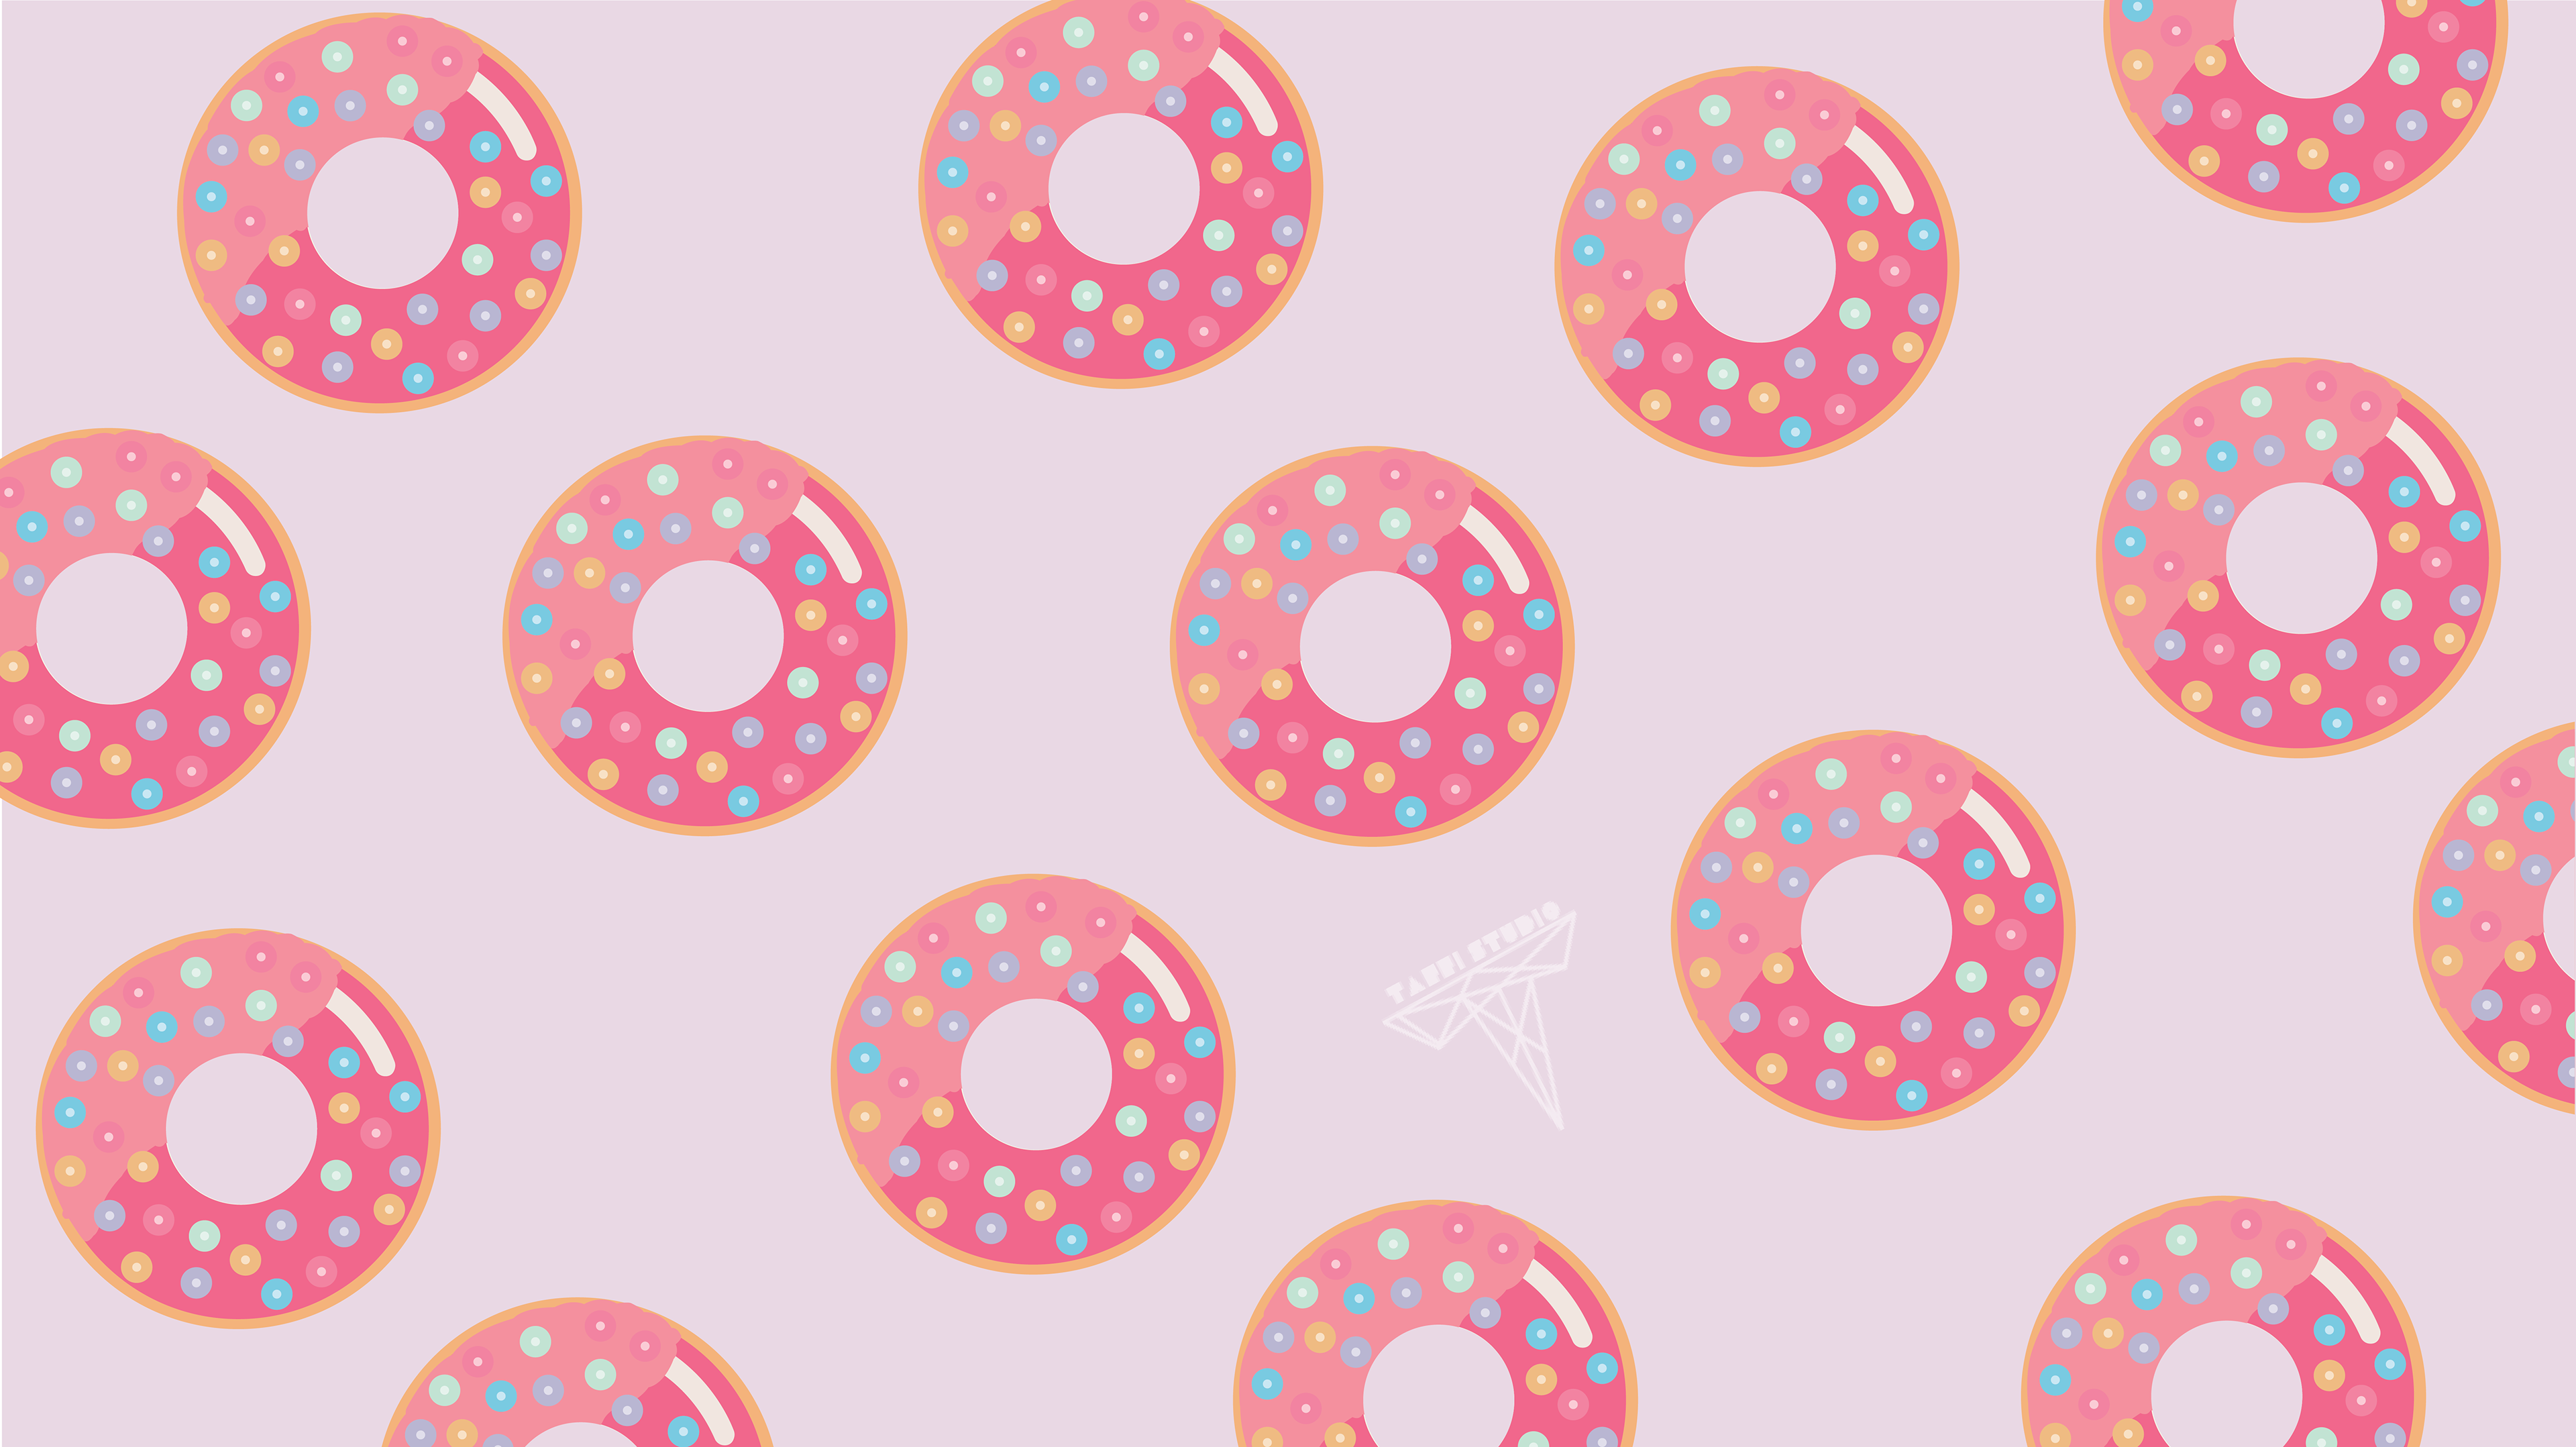 I Just Felt Like Making Donut So Did 3 Heres 1920x1080 Very Cute Wallpaper For You All Let Me Know If Use Them